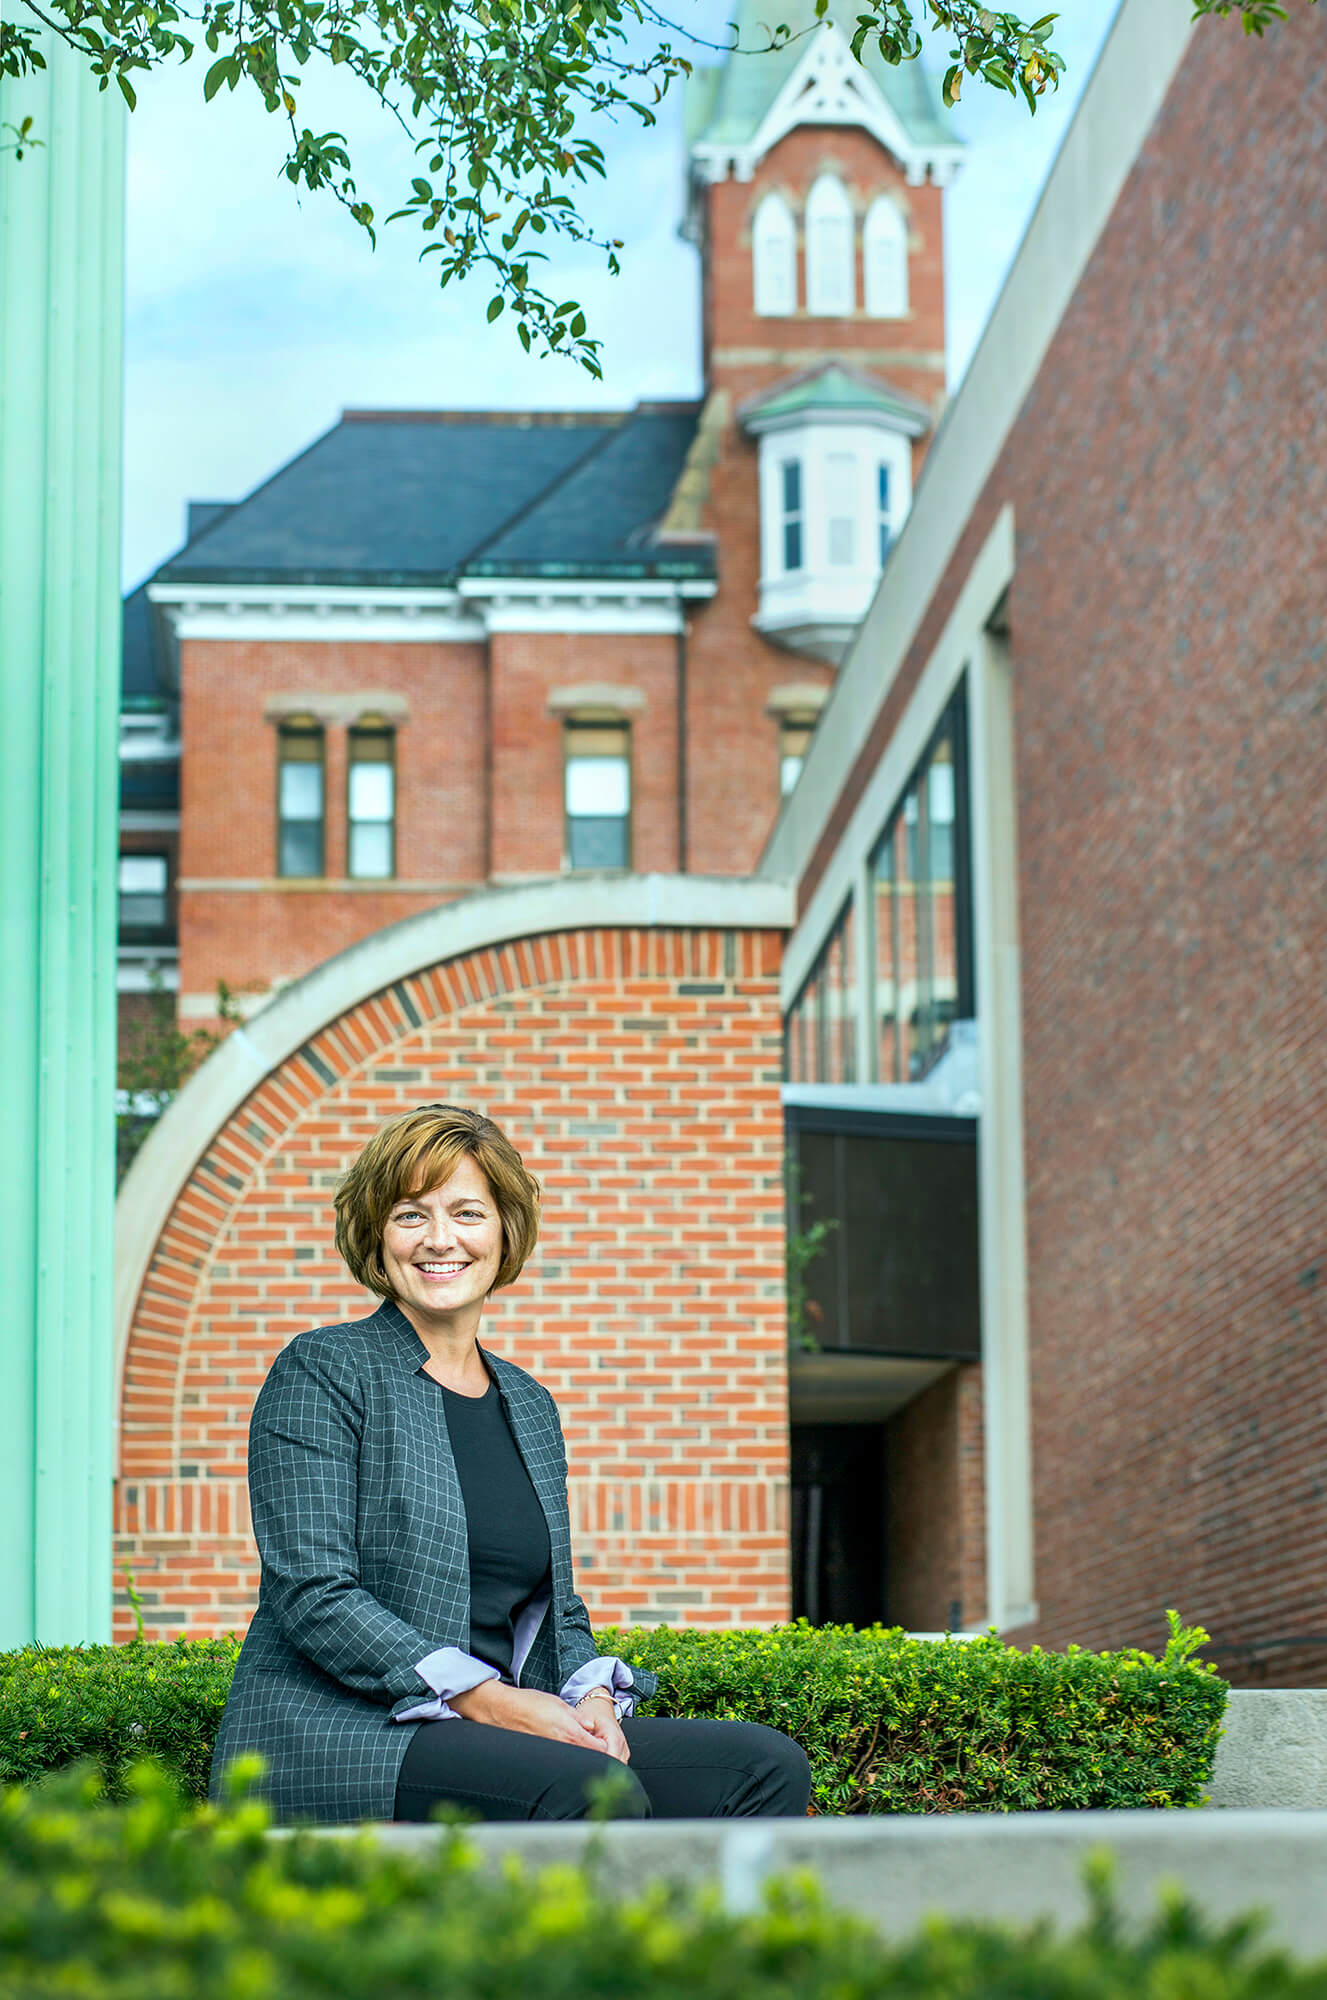 Portrait photography of Jennifer O'Leary, Center for Workforce Development at MaineHealth, outside of Maine Medical Center in Portland